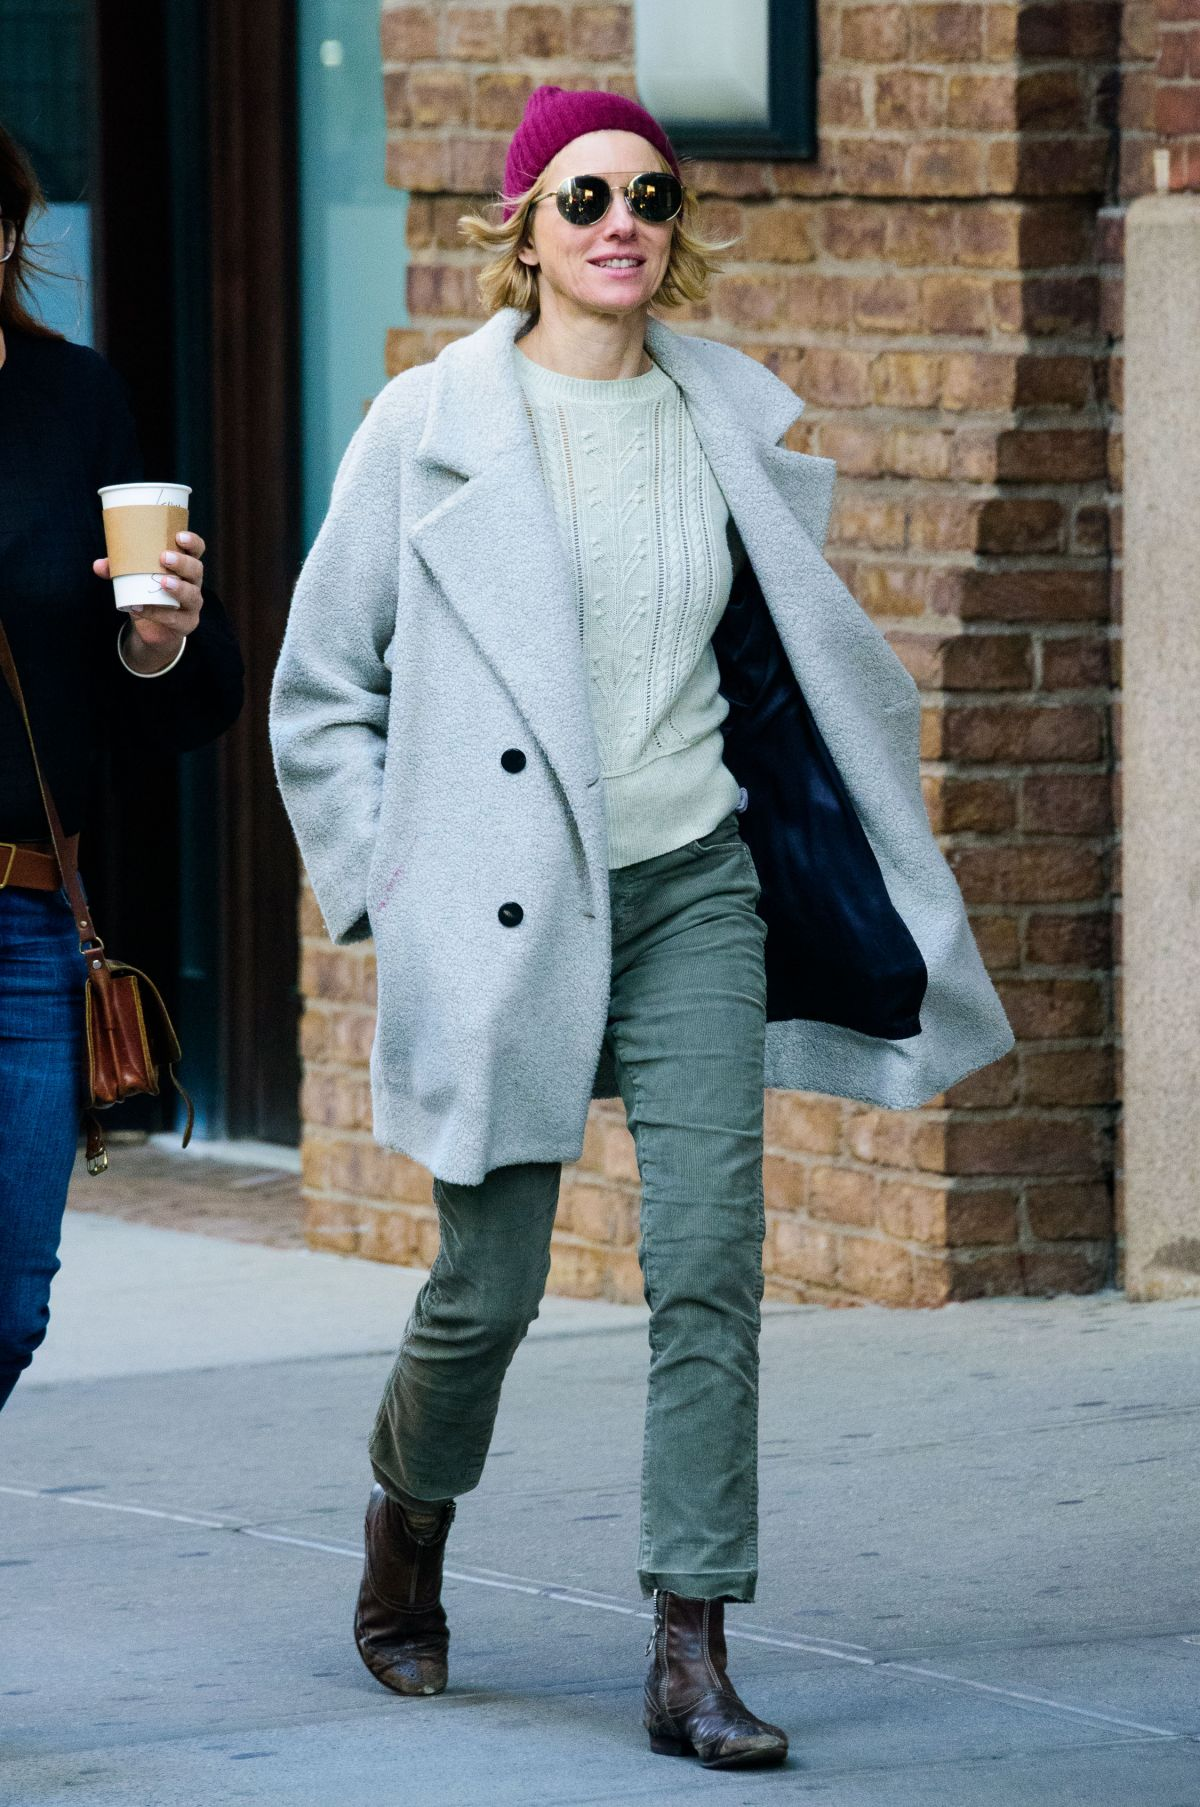 Naomi Watts Wears A Cable Knit Sweater Light Grey Pea Coat And Purple Beanie As